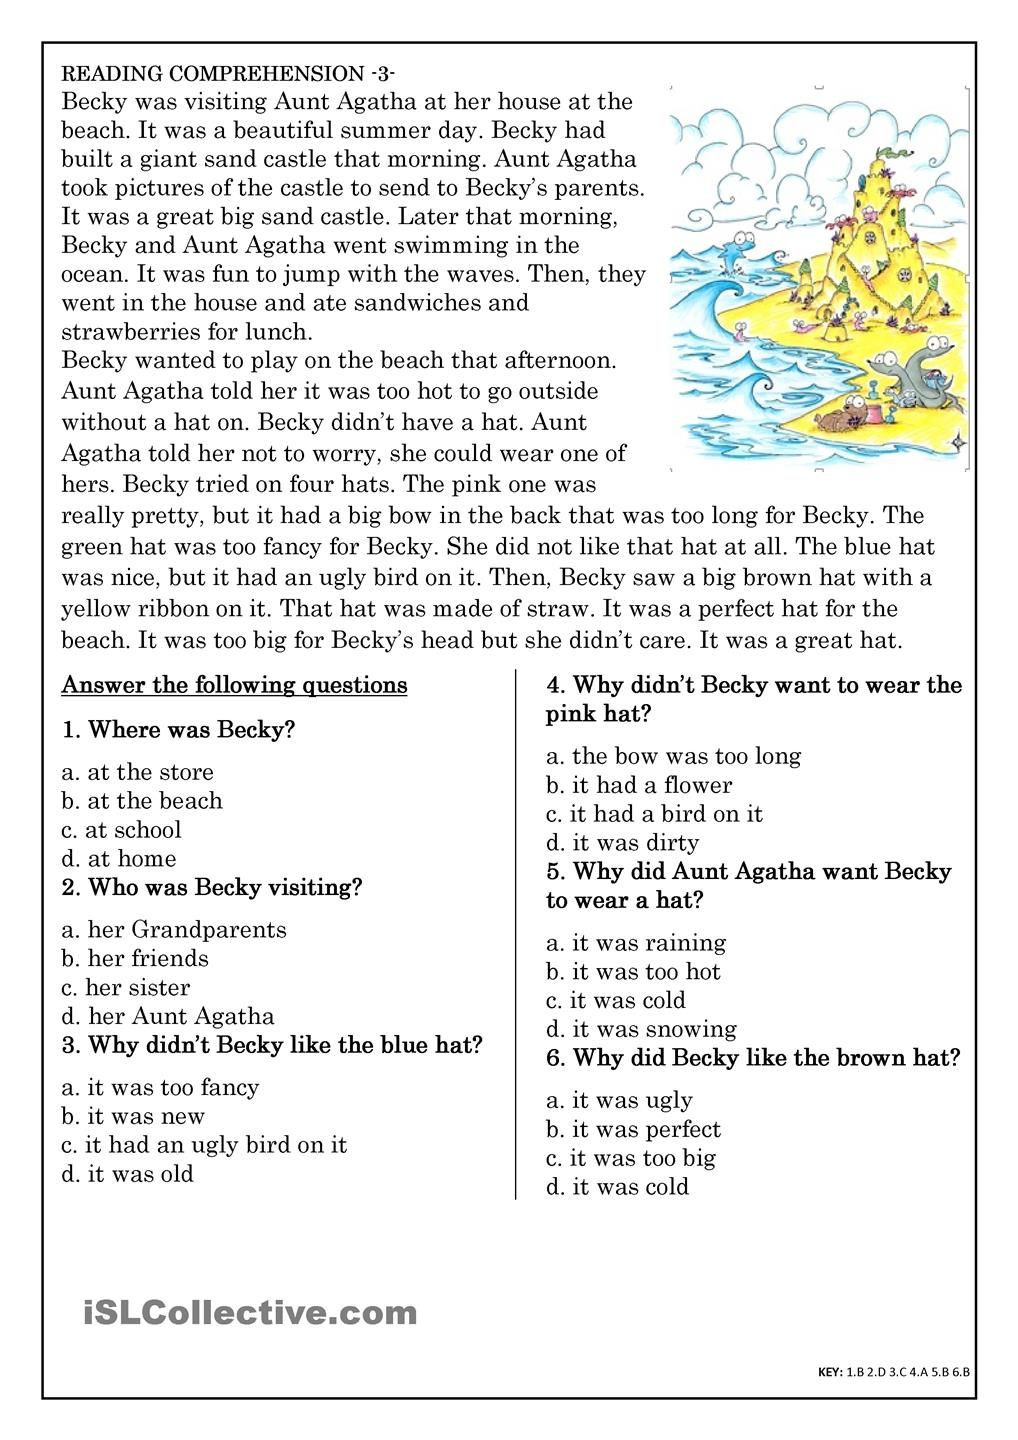 Comprehension Worksheets for Grade 6 Reading Prehension for Beginner and Elementary Students 3